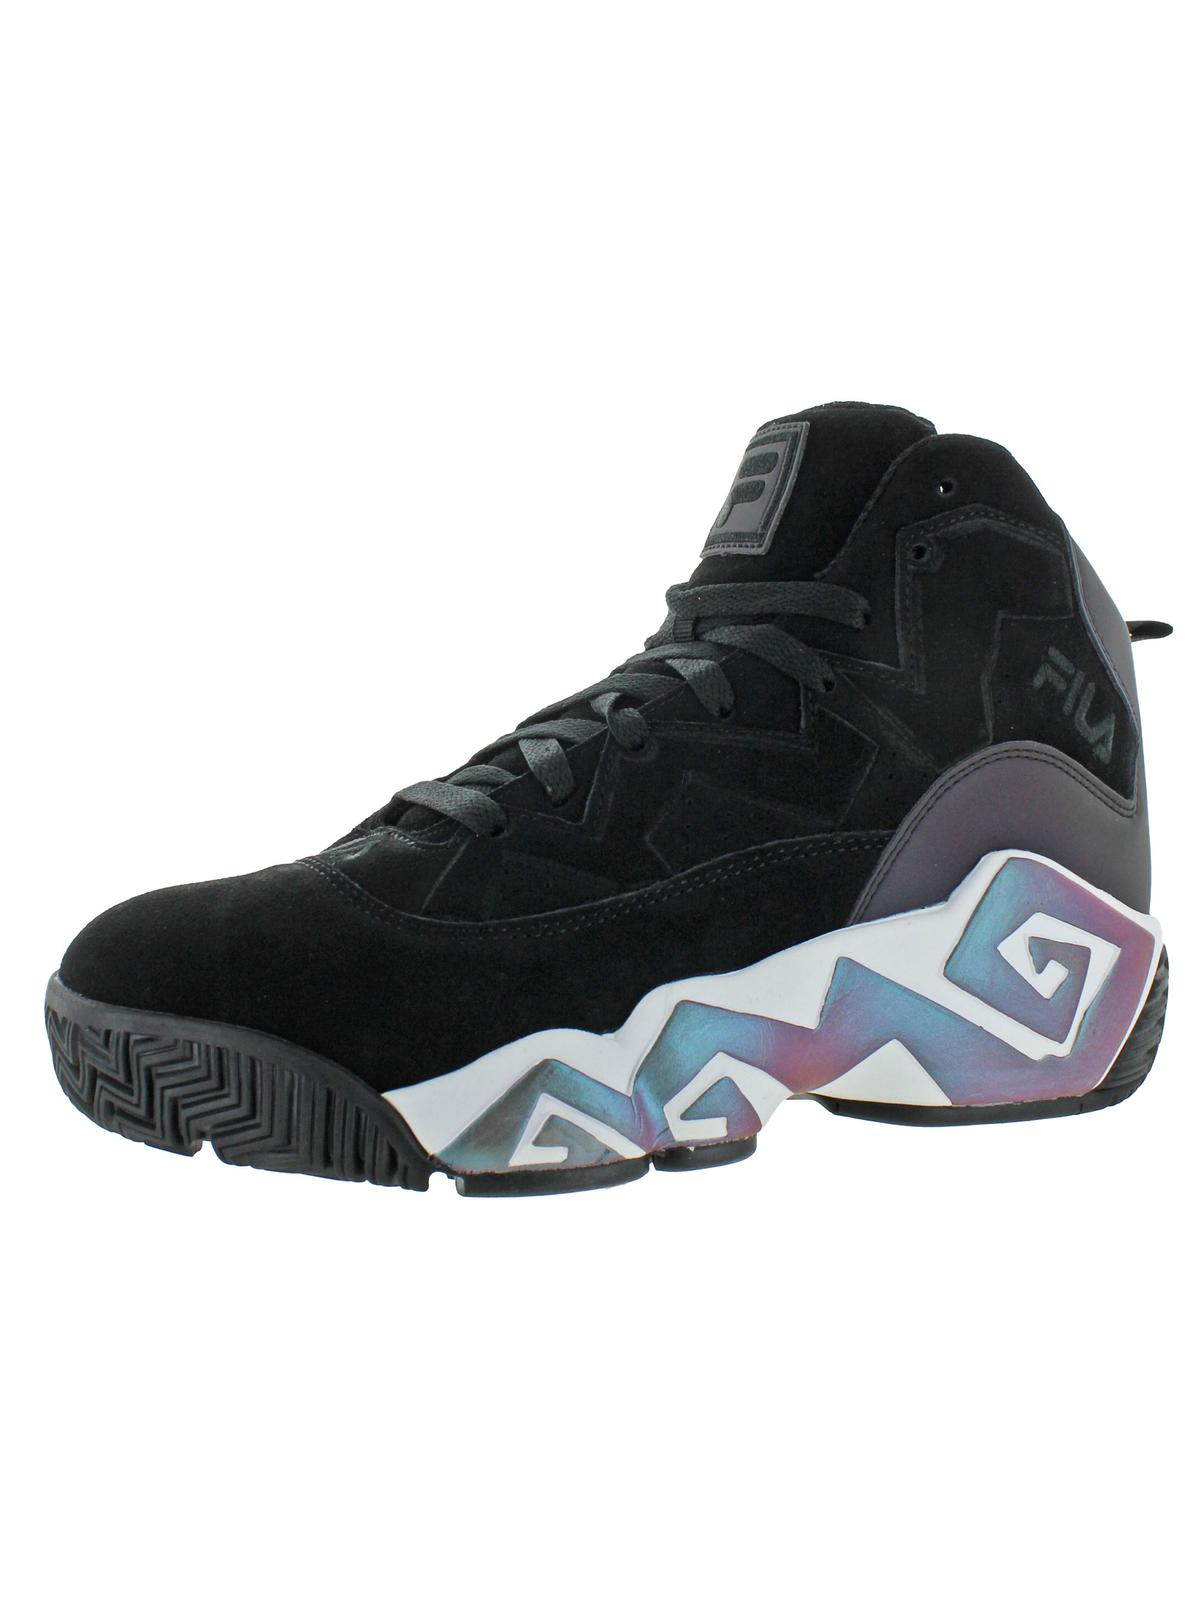 Fila Fila Men's MB Phase Shift Leather Basketball Trainers Sneakers Black Size 13